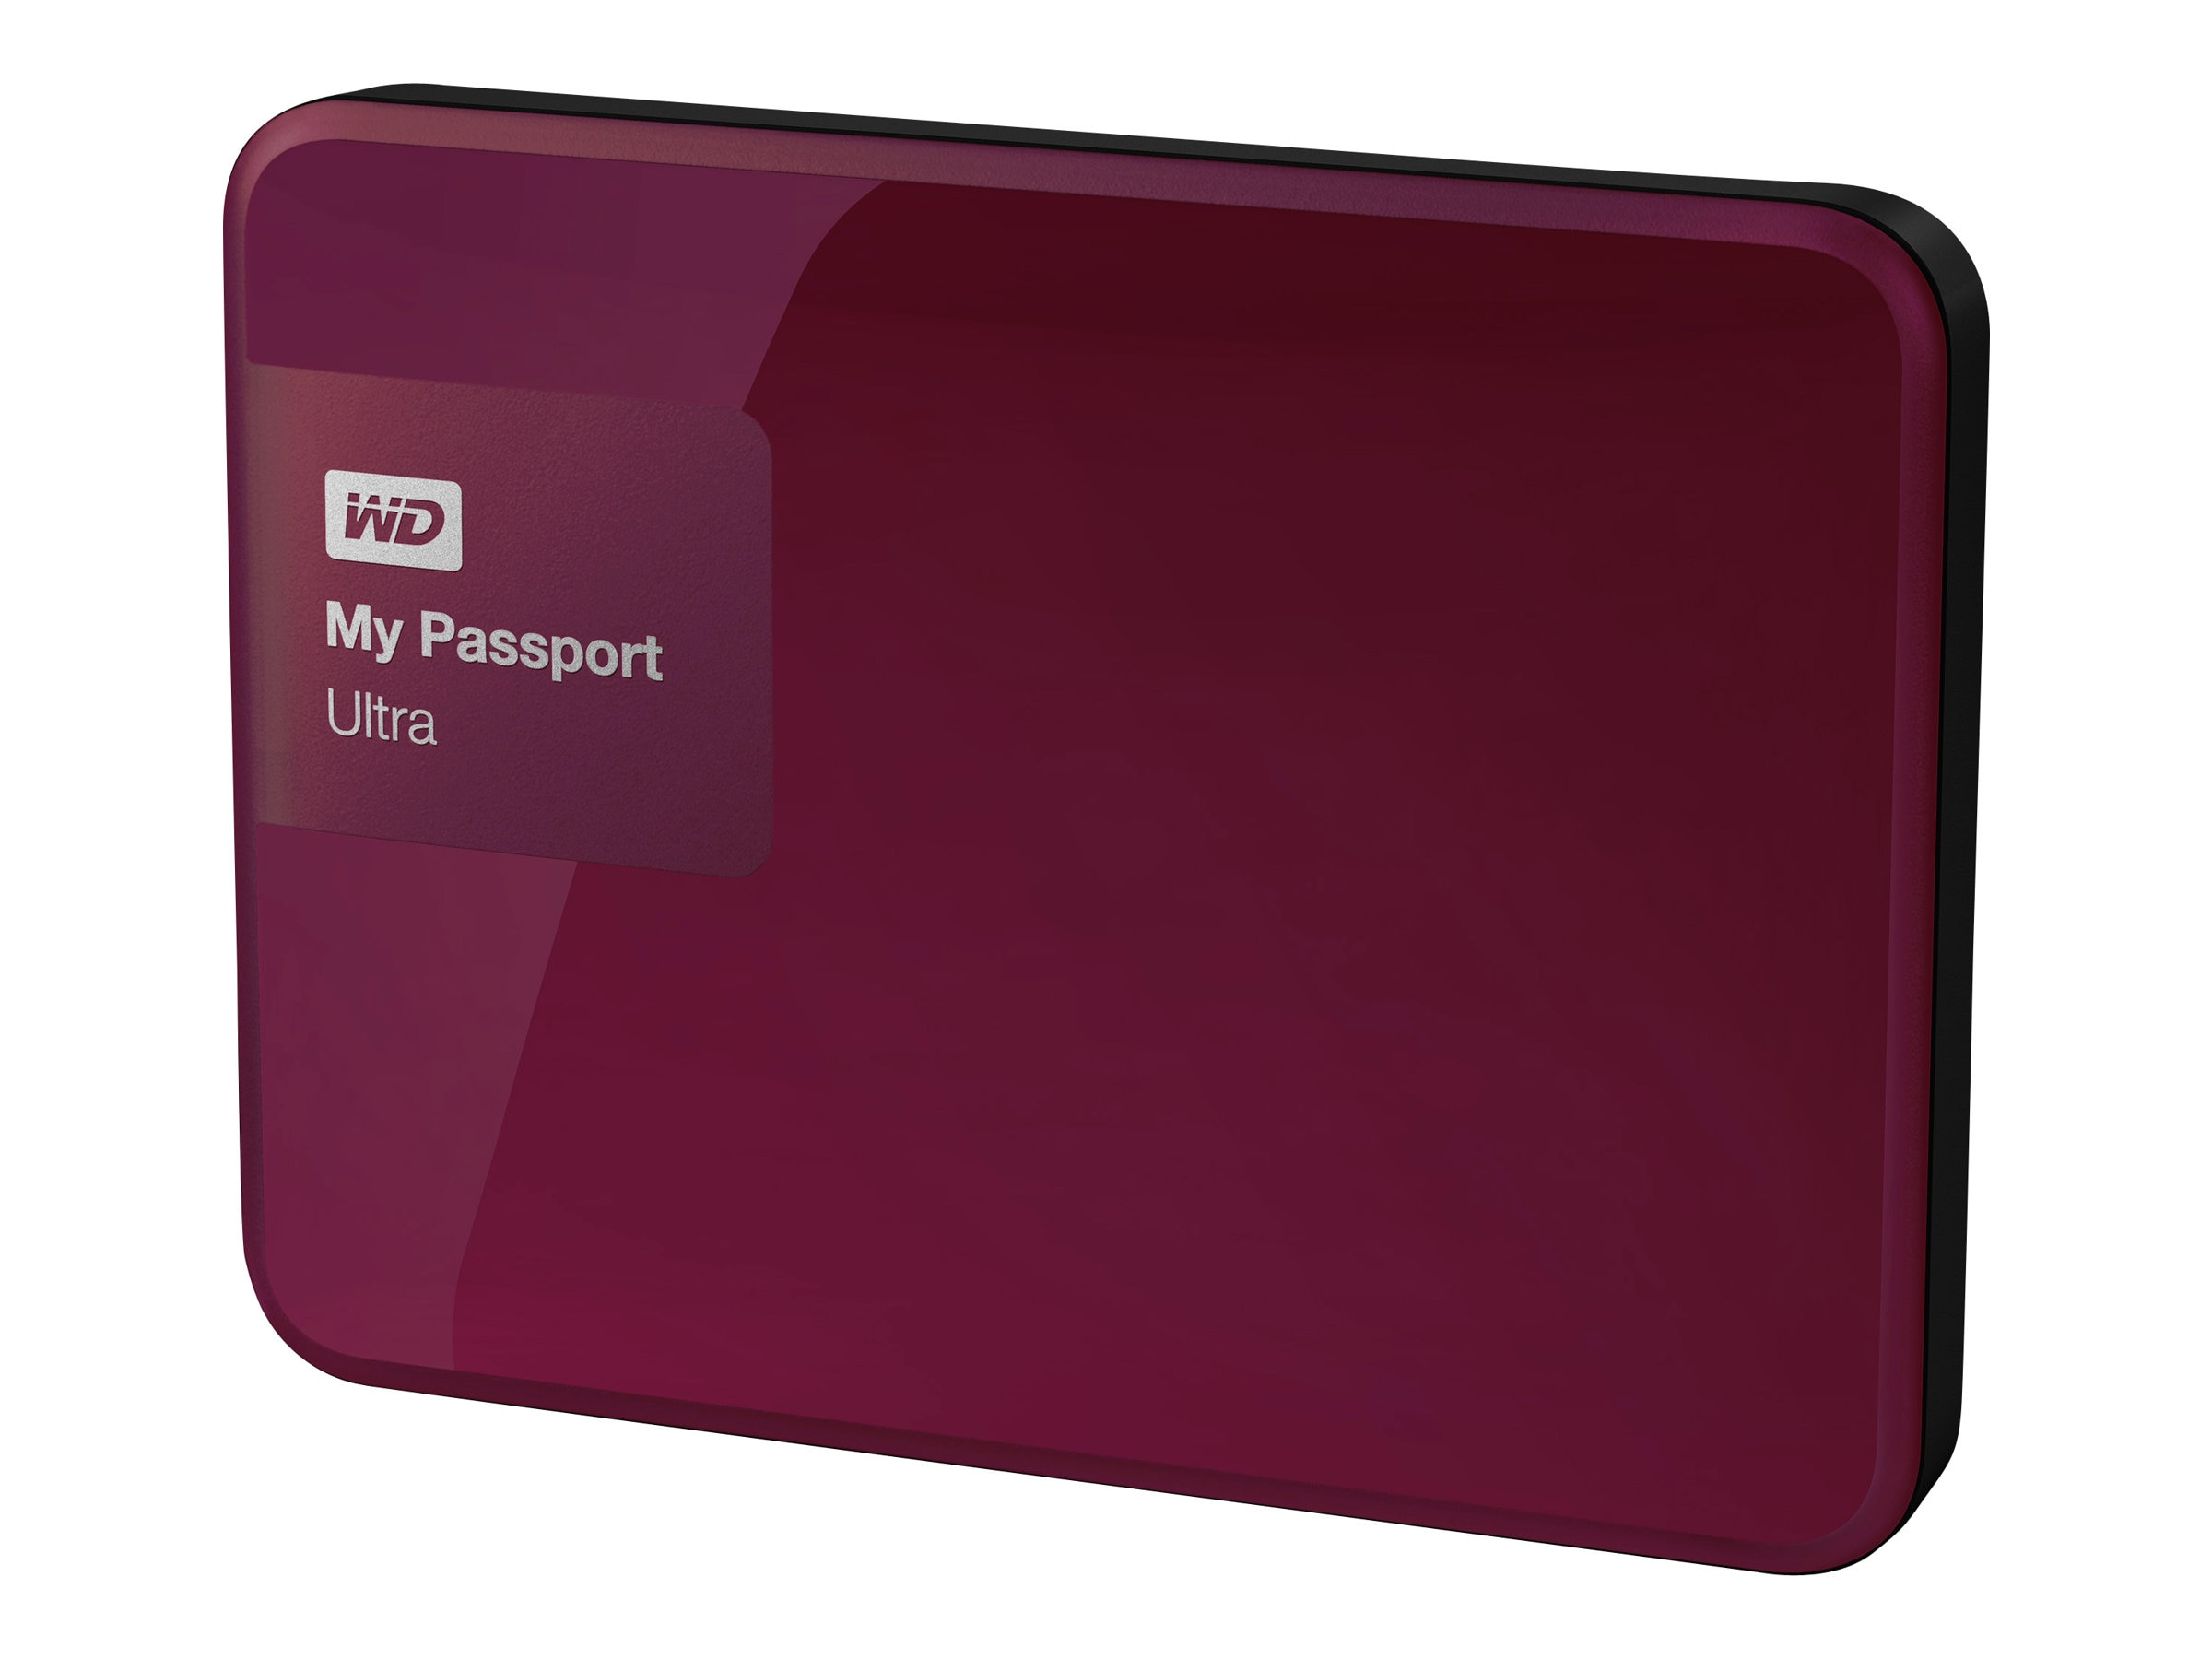 WD 2TB My Passport Ultra Portable Hard Drive - Berry